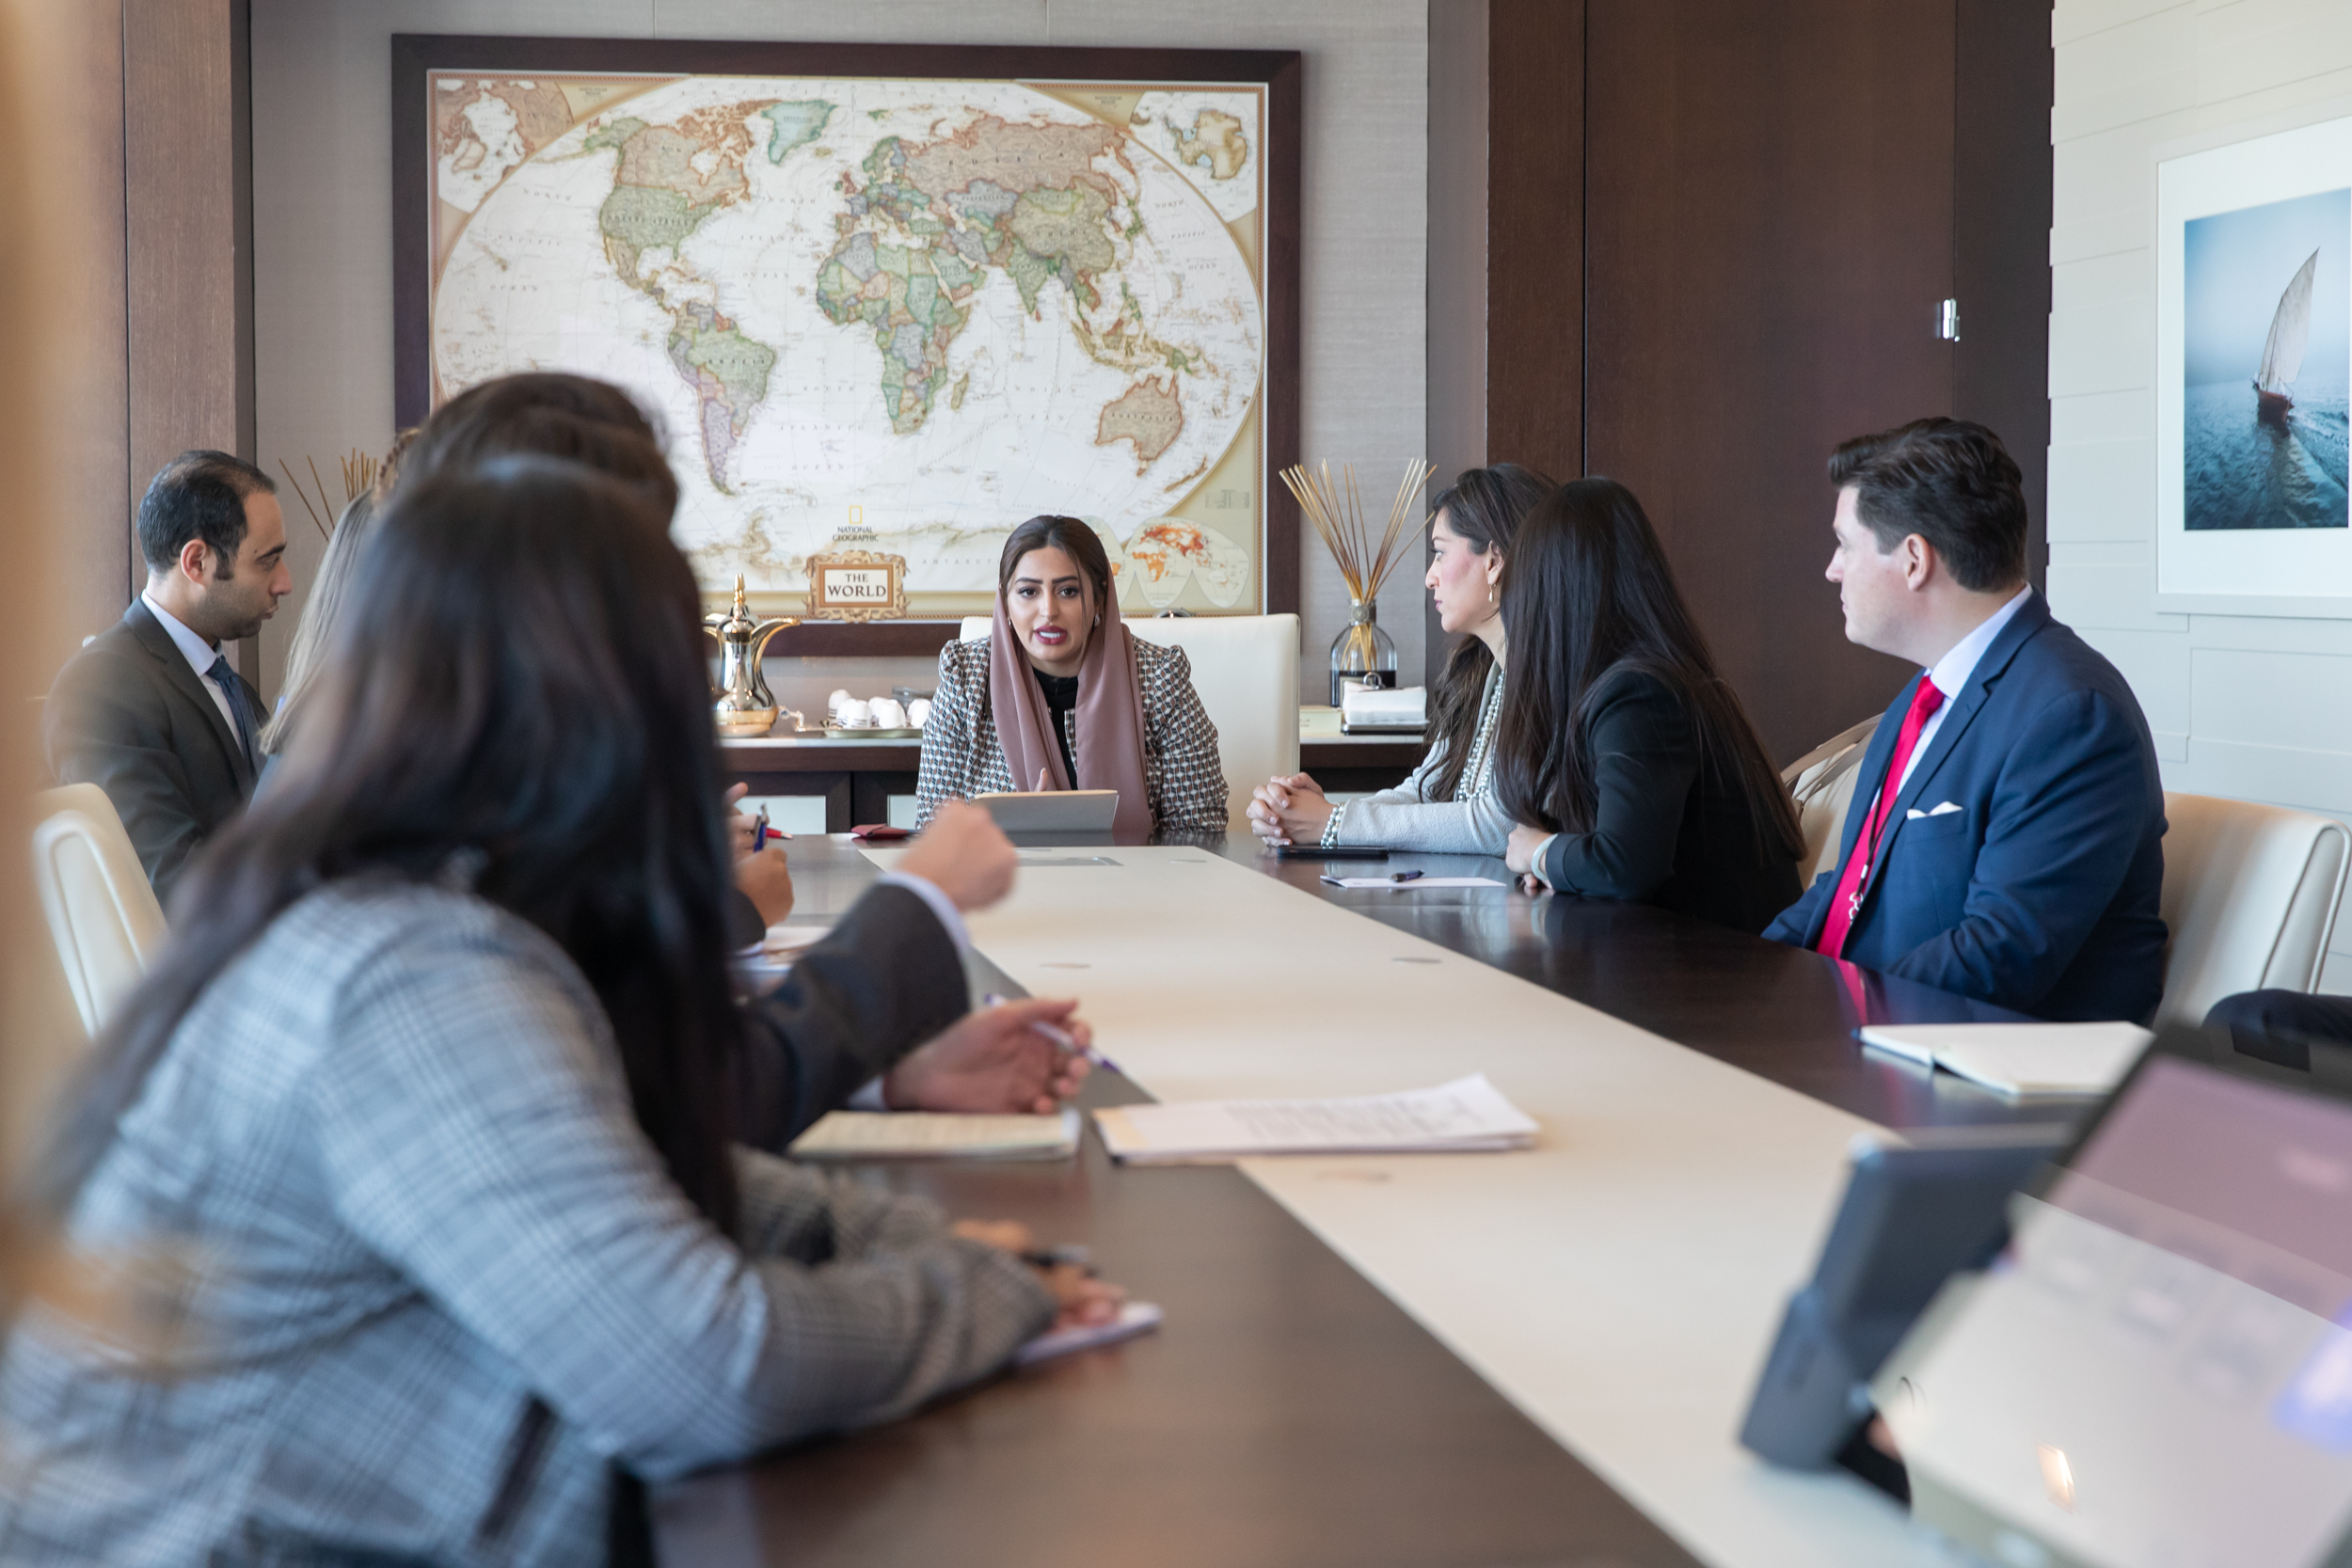 Washington, D.C. - October 2019  Emerging Leaders discuss Middle East policy with government officials, experts, and civil society leaders during a delegation to Washington, D.C., in October 2019.